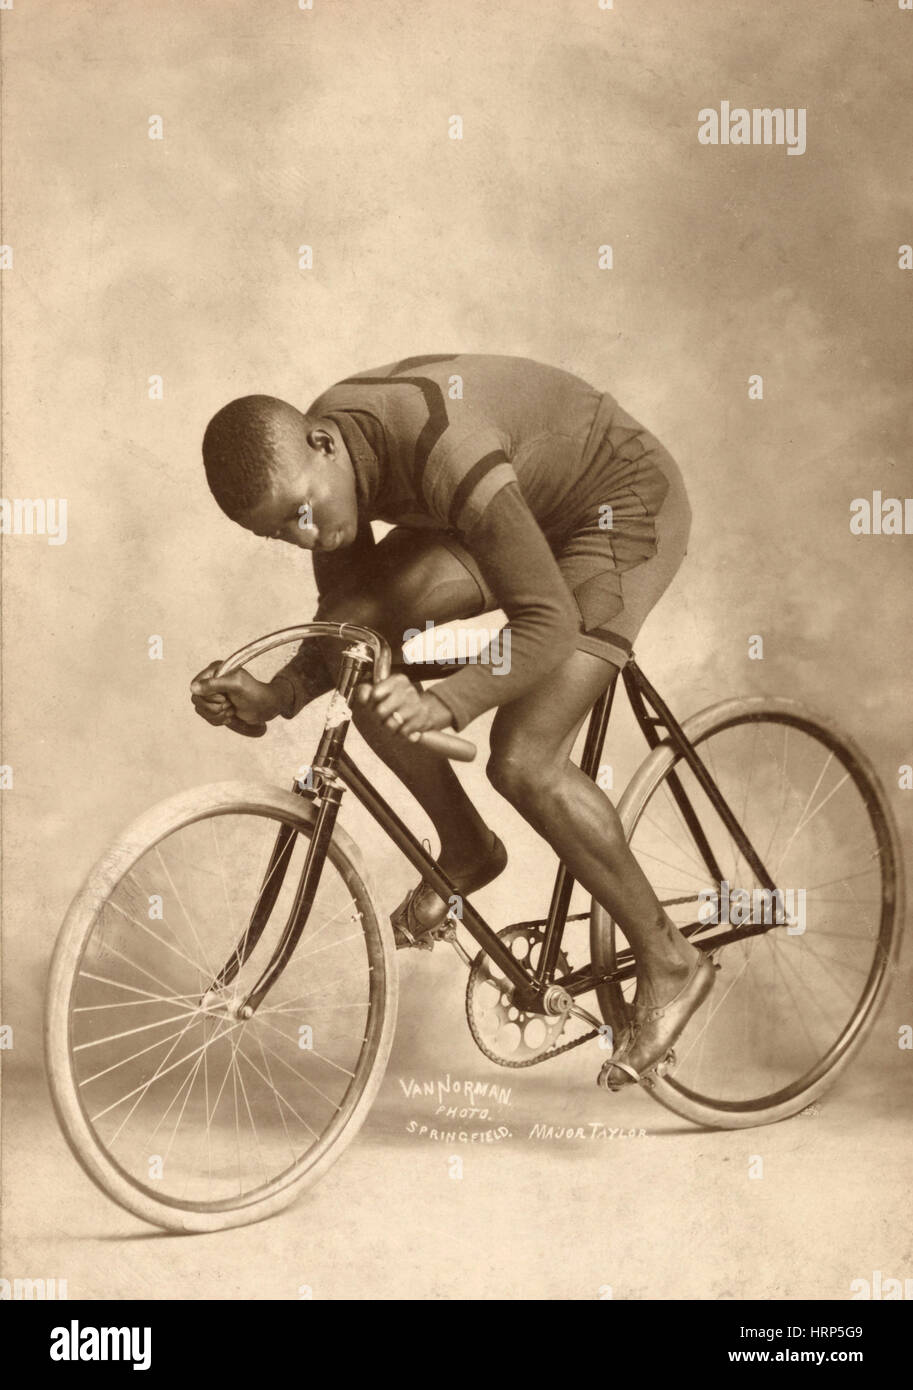 Marshall Taylor, World Champion Cyclist - Stock Image